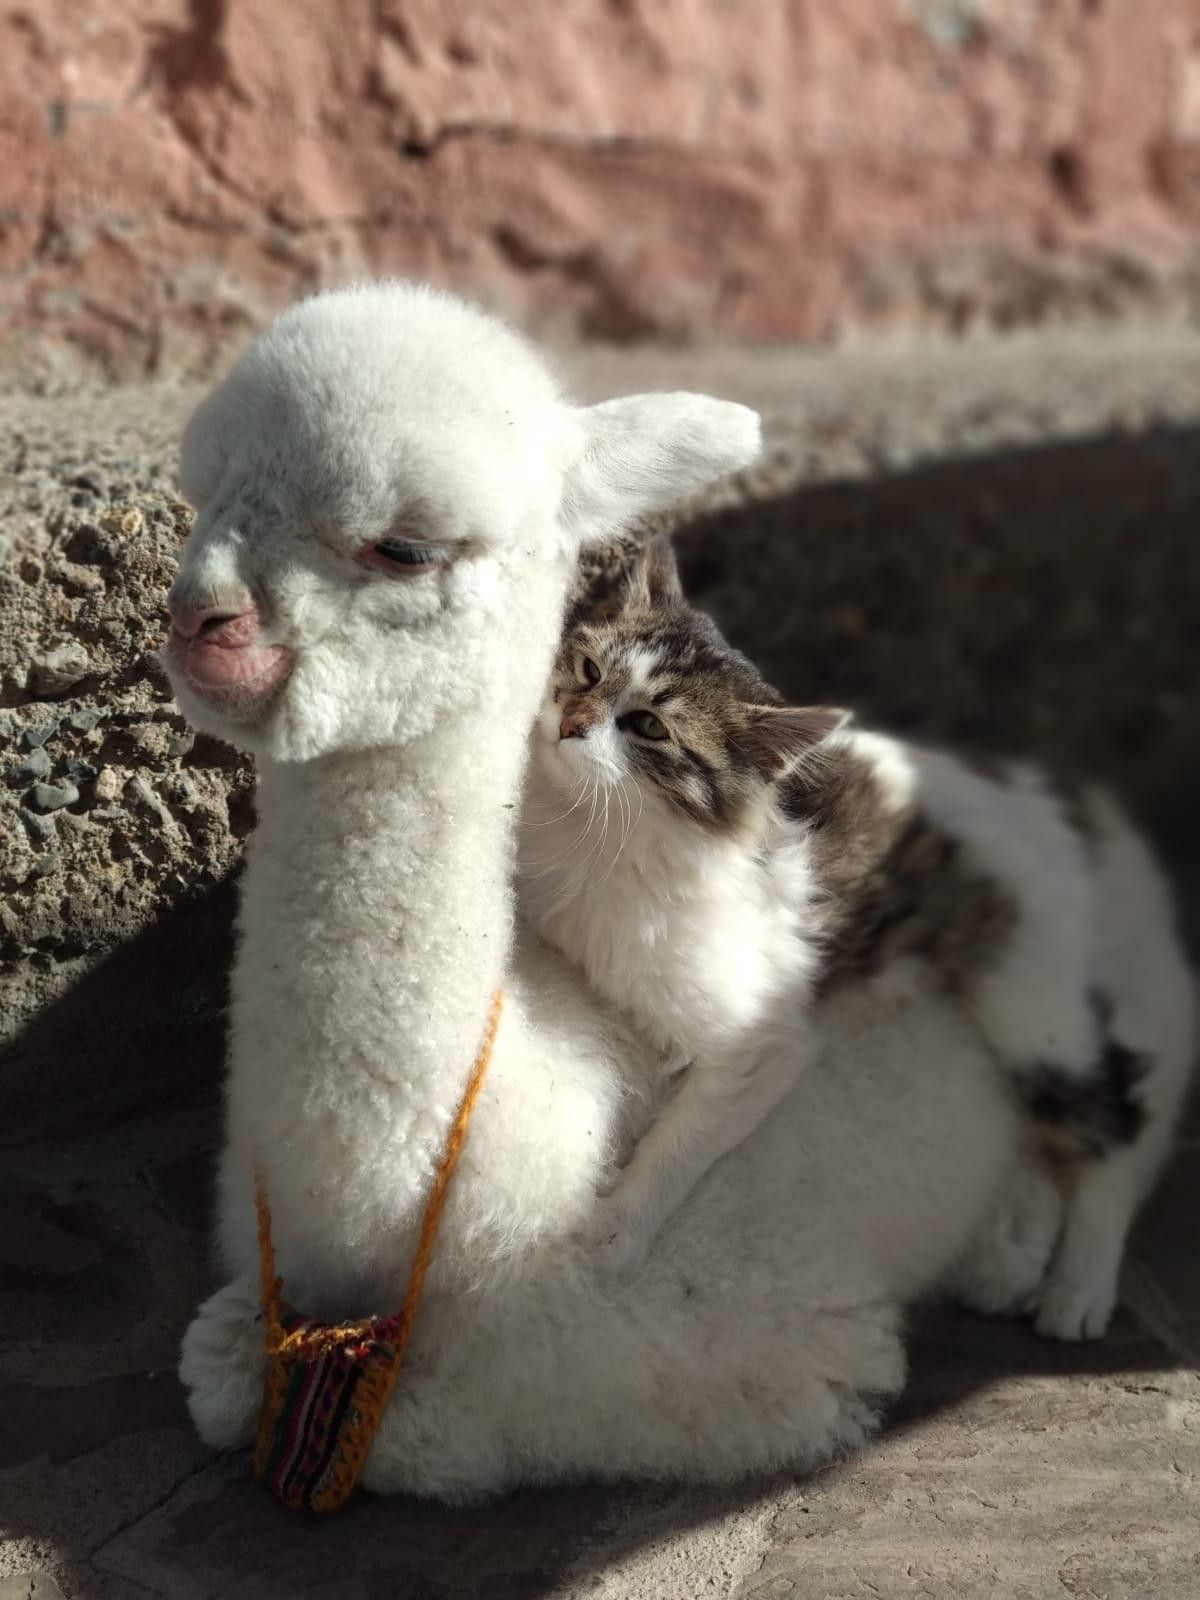 Omg A Tiny Llama With Images Cute Baby Animals Cute Animals